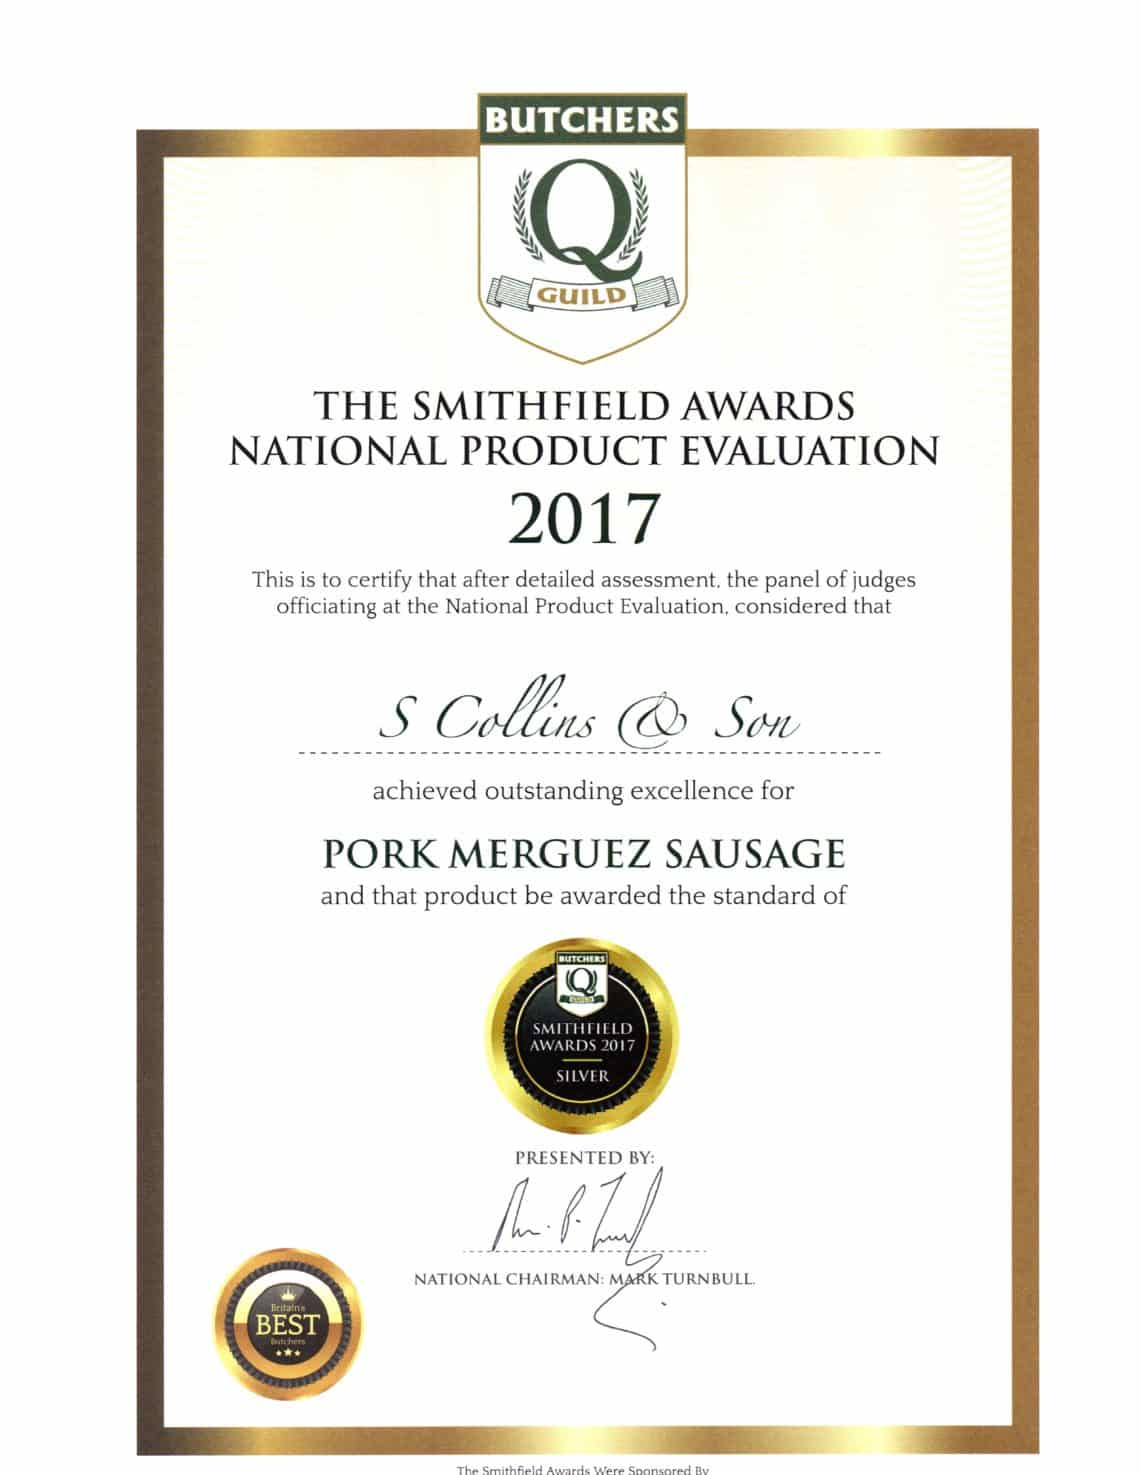 Pork Merguez: Smithfield Awards 2017